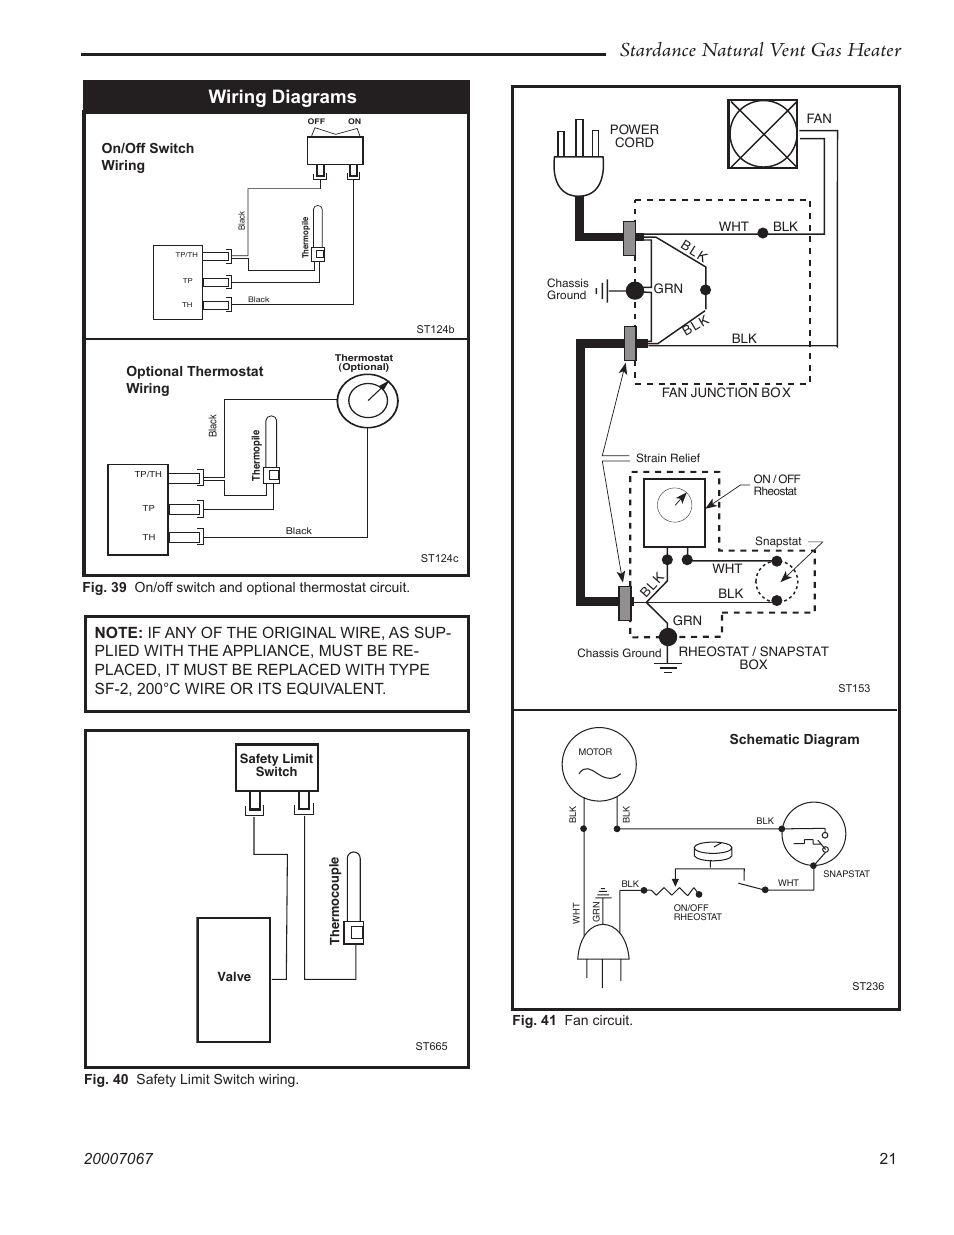 Stardance Natural Vent Gas Heater  Wiring Diagrams